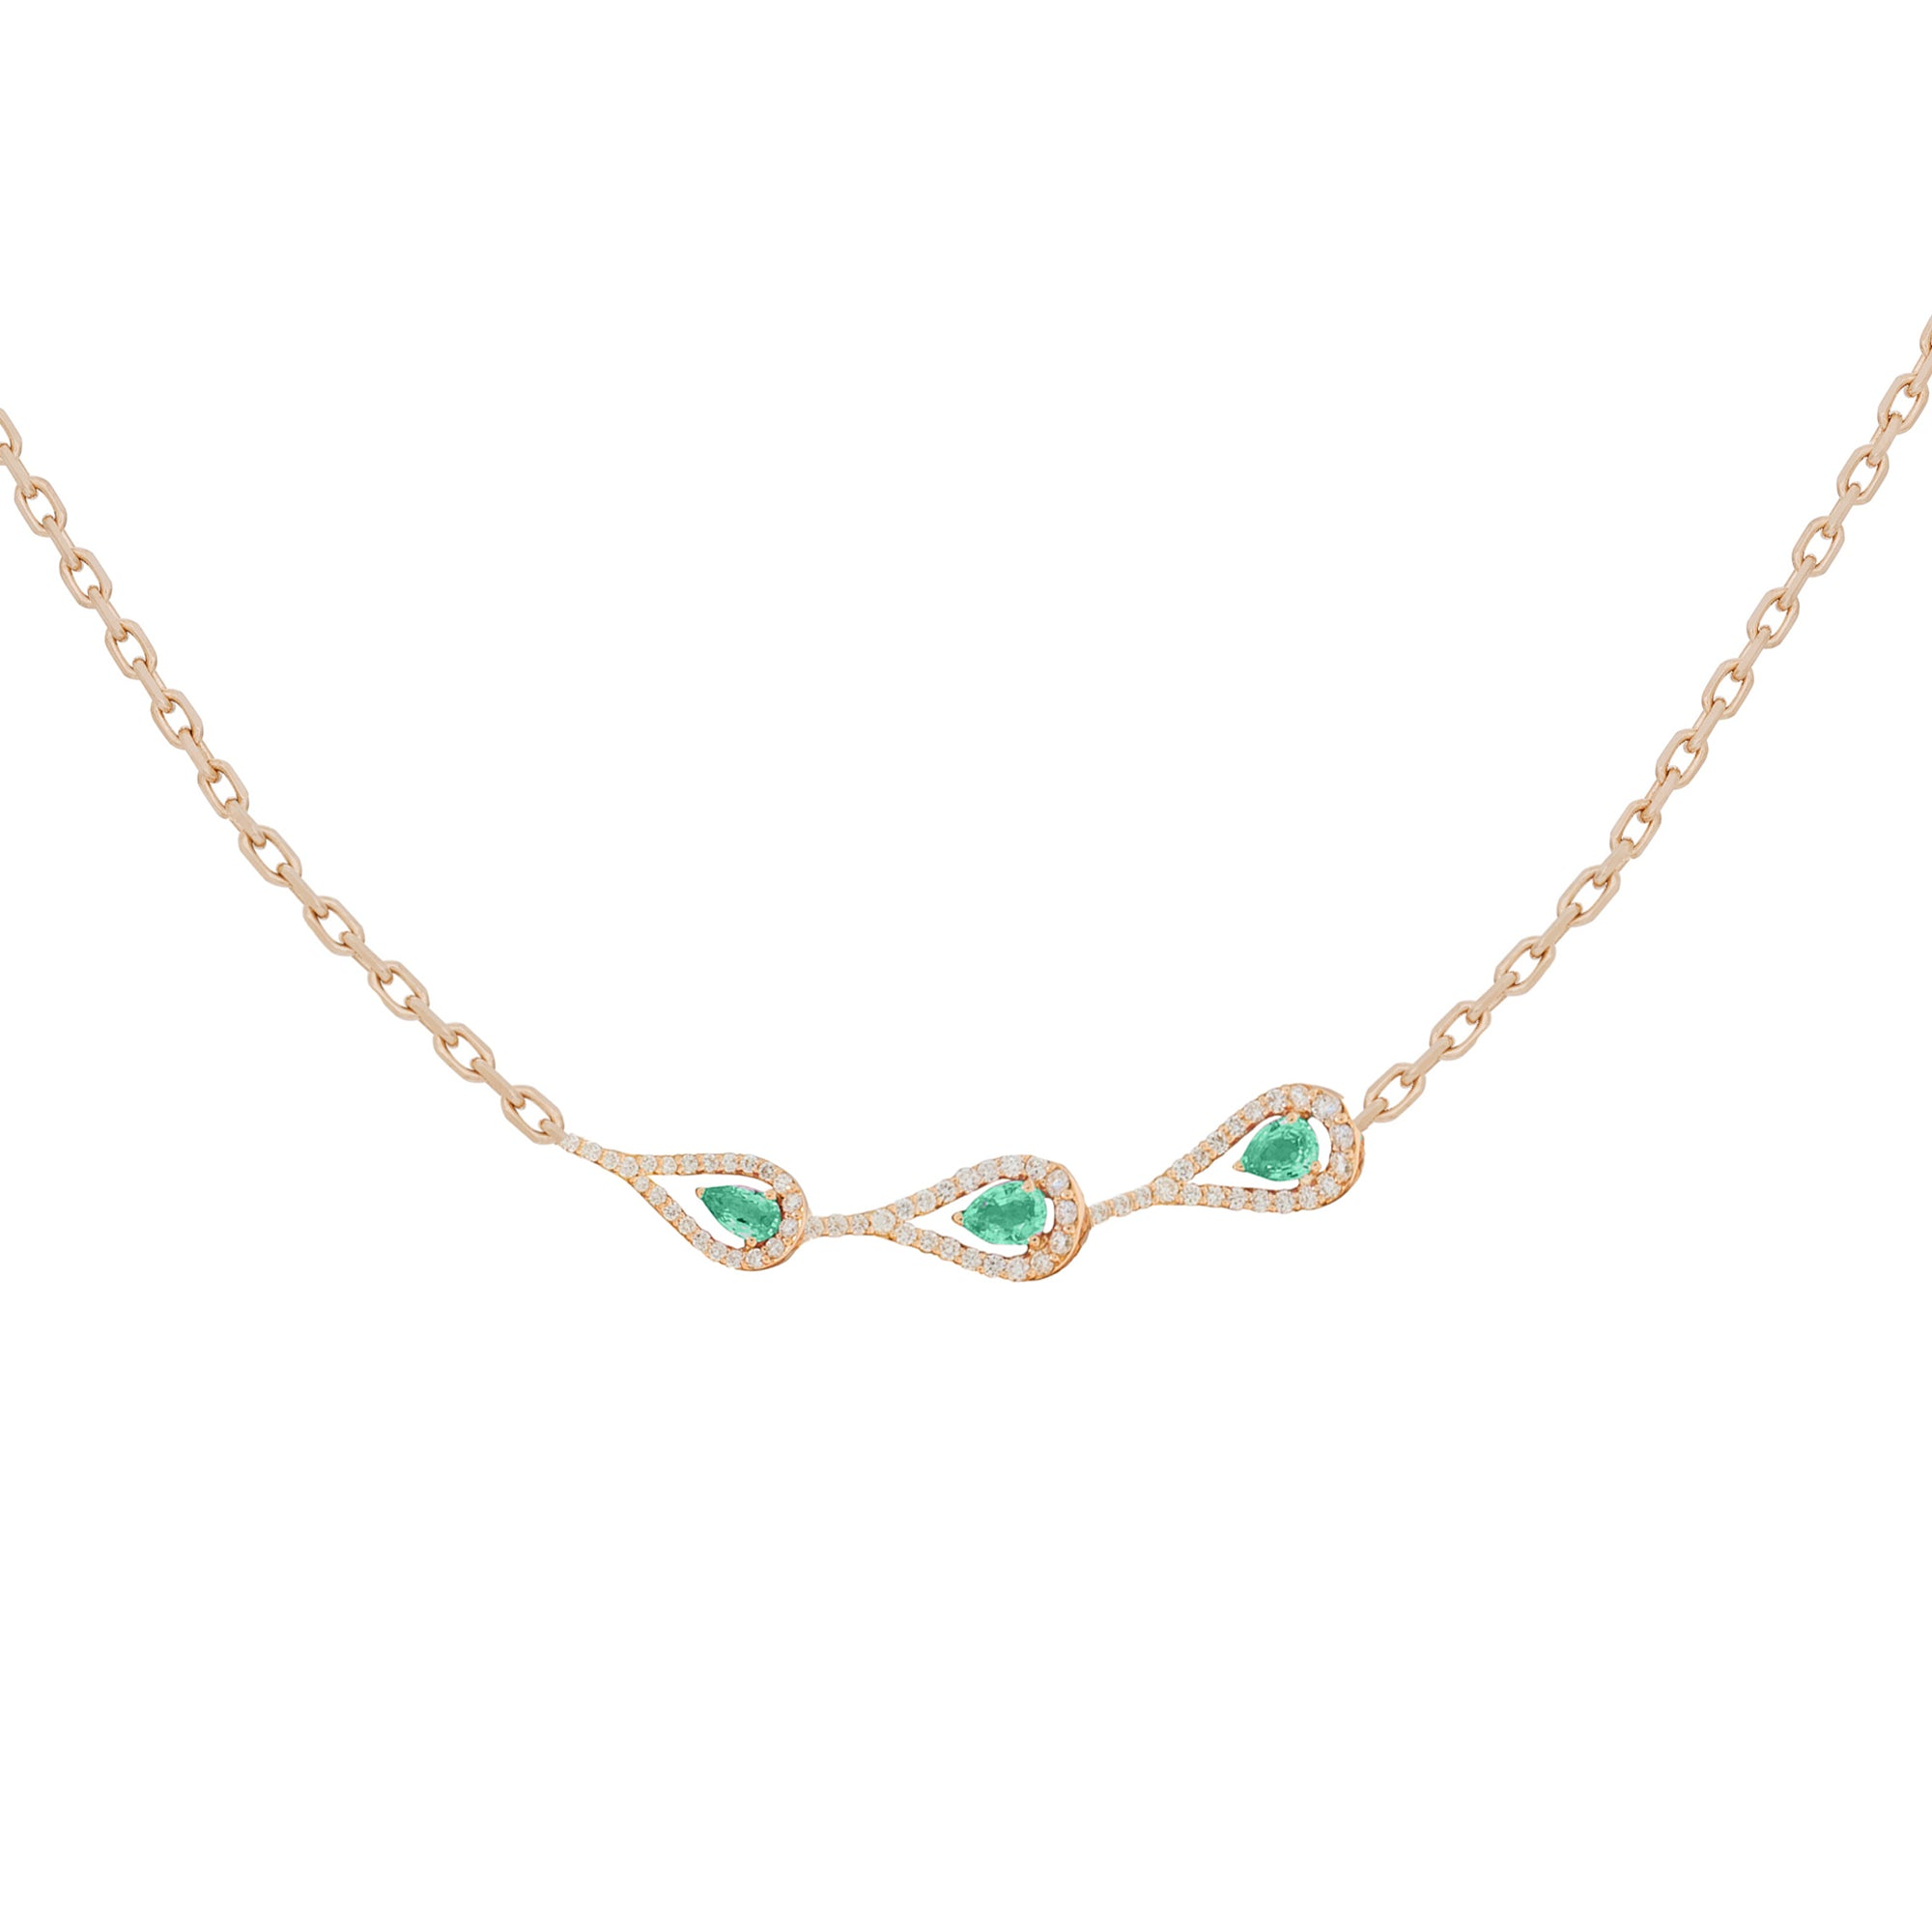 Era Rose Gold Necklace With Emeralds Diamonds